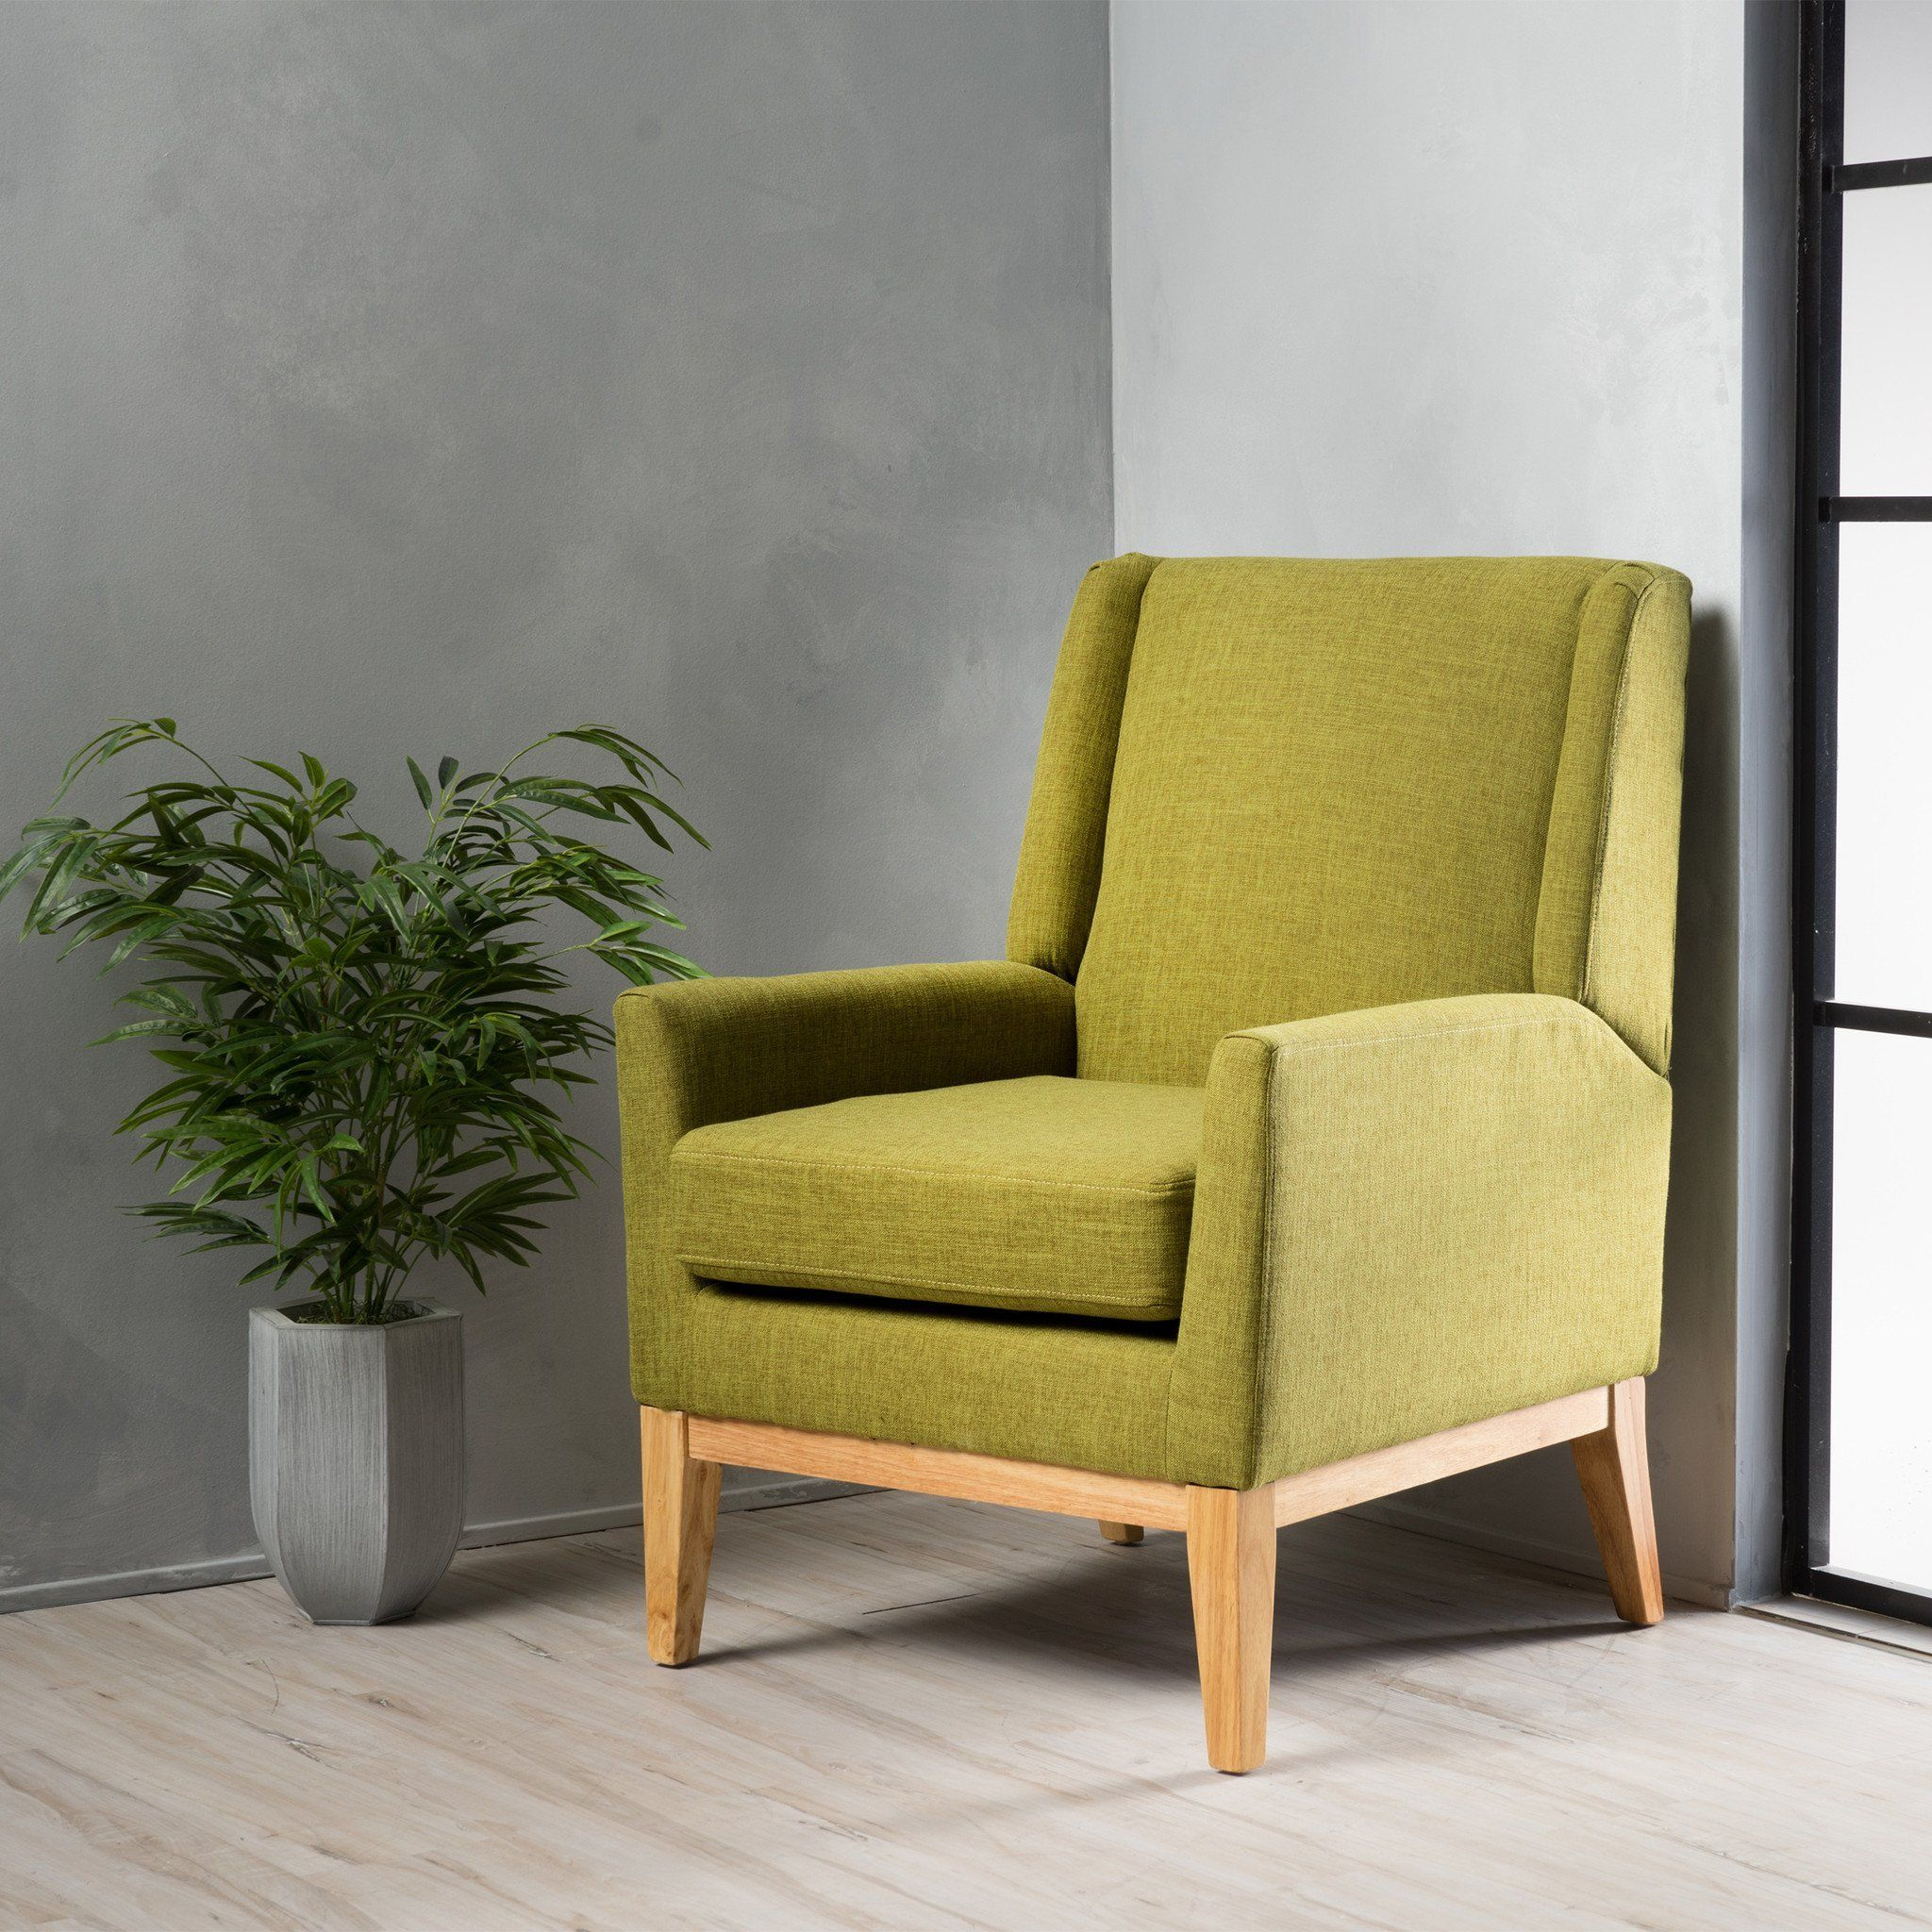 Terrific Kronen Mid Century Design Fabric Accent Chair In 2019 Pabps2019 Chair Design Images Pabps2019Com